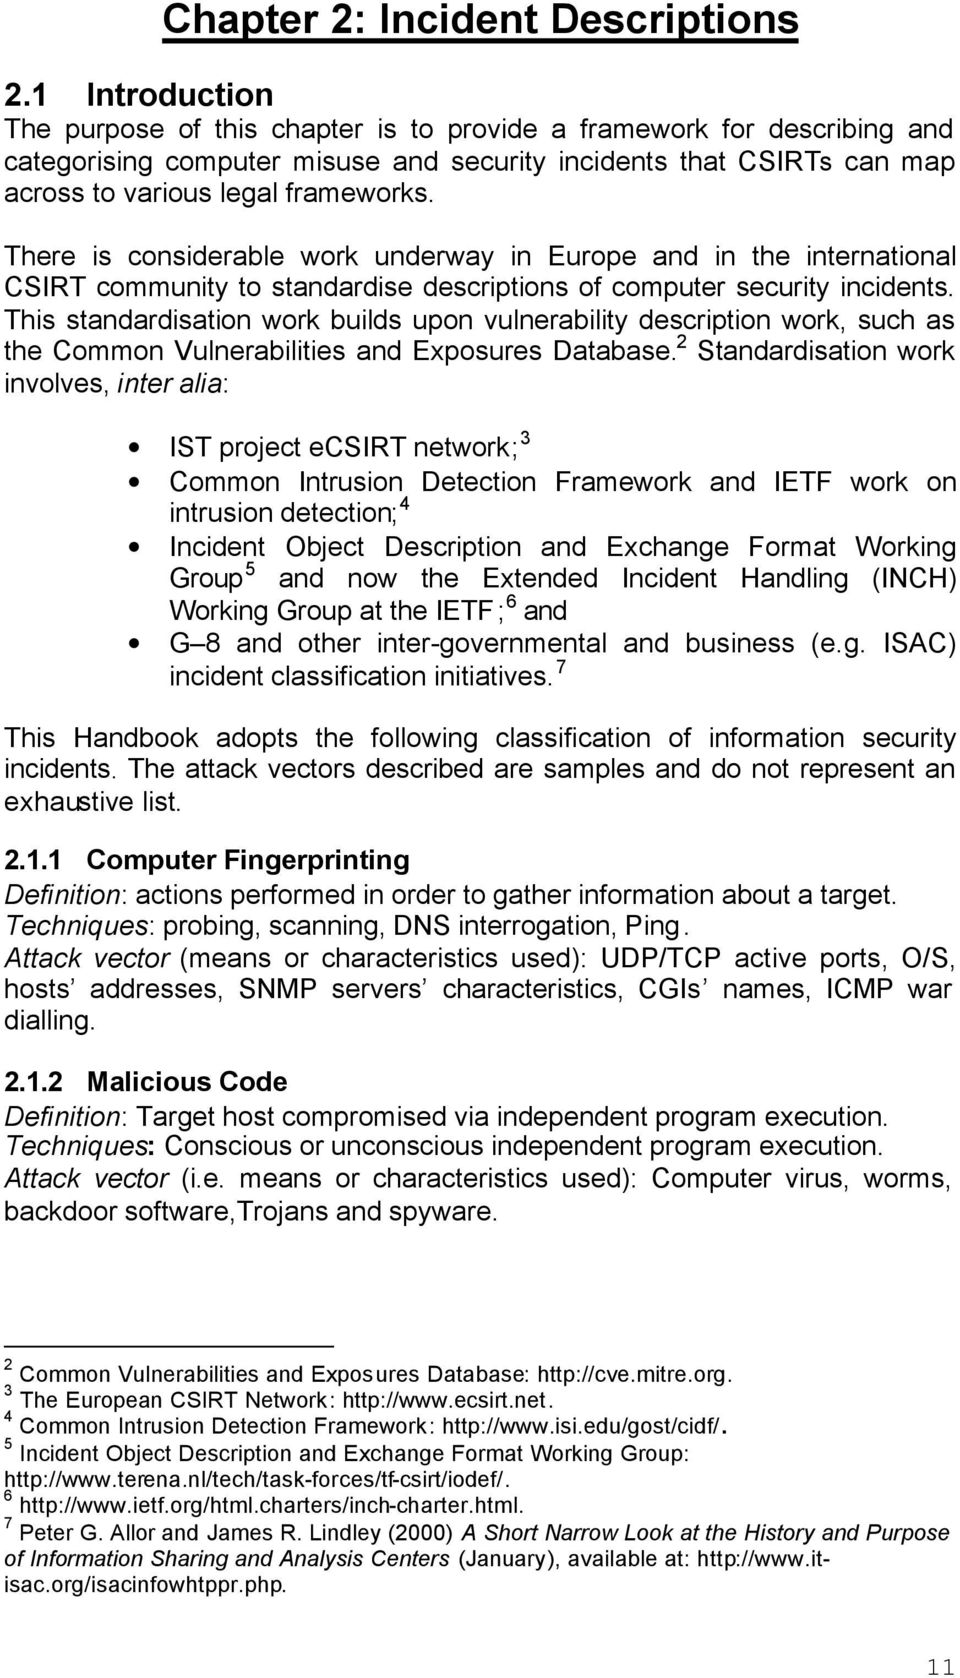 There is considerable work underway in Europe and in the international CSIRT community to standardise descriptions of computer security incidents.